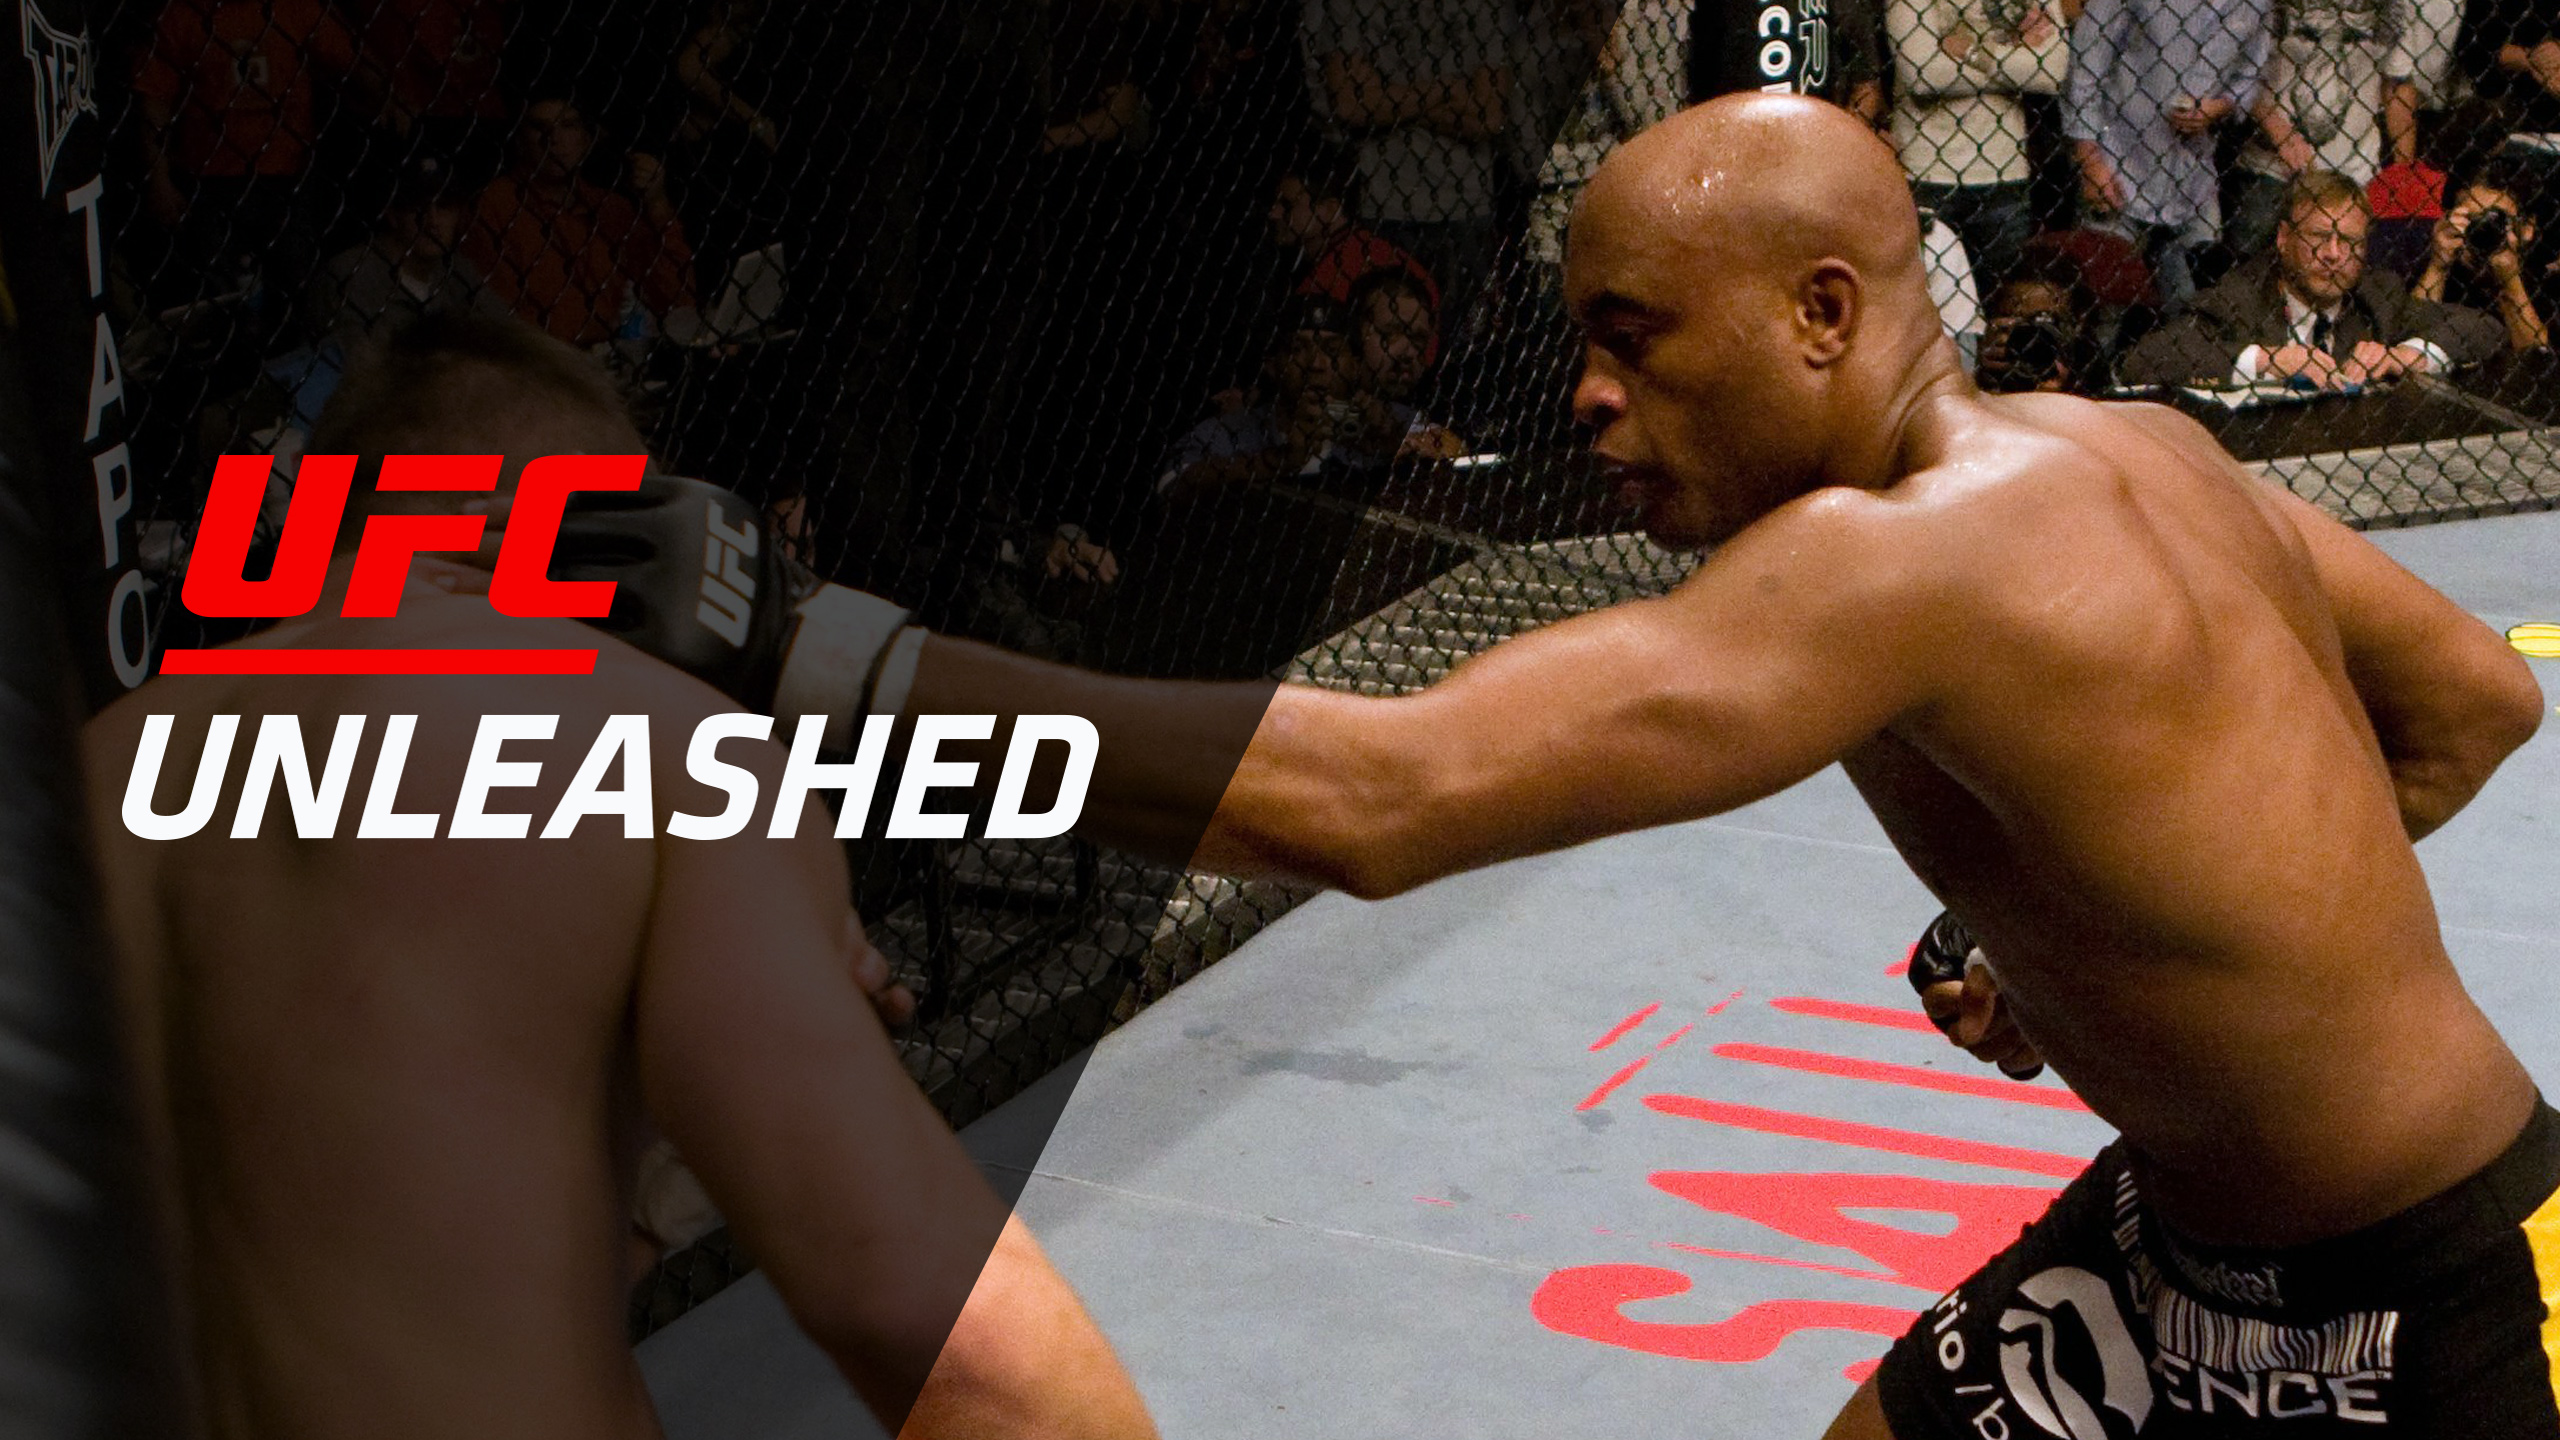 UFC Unleashed: Anderson Silva vs. Rich Franklin 1